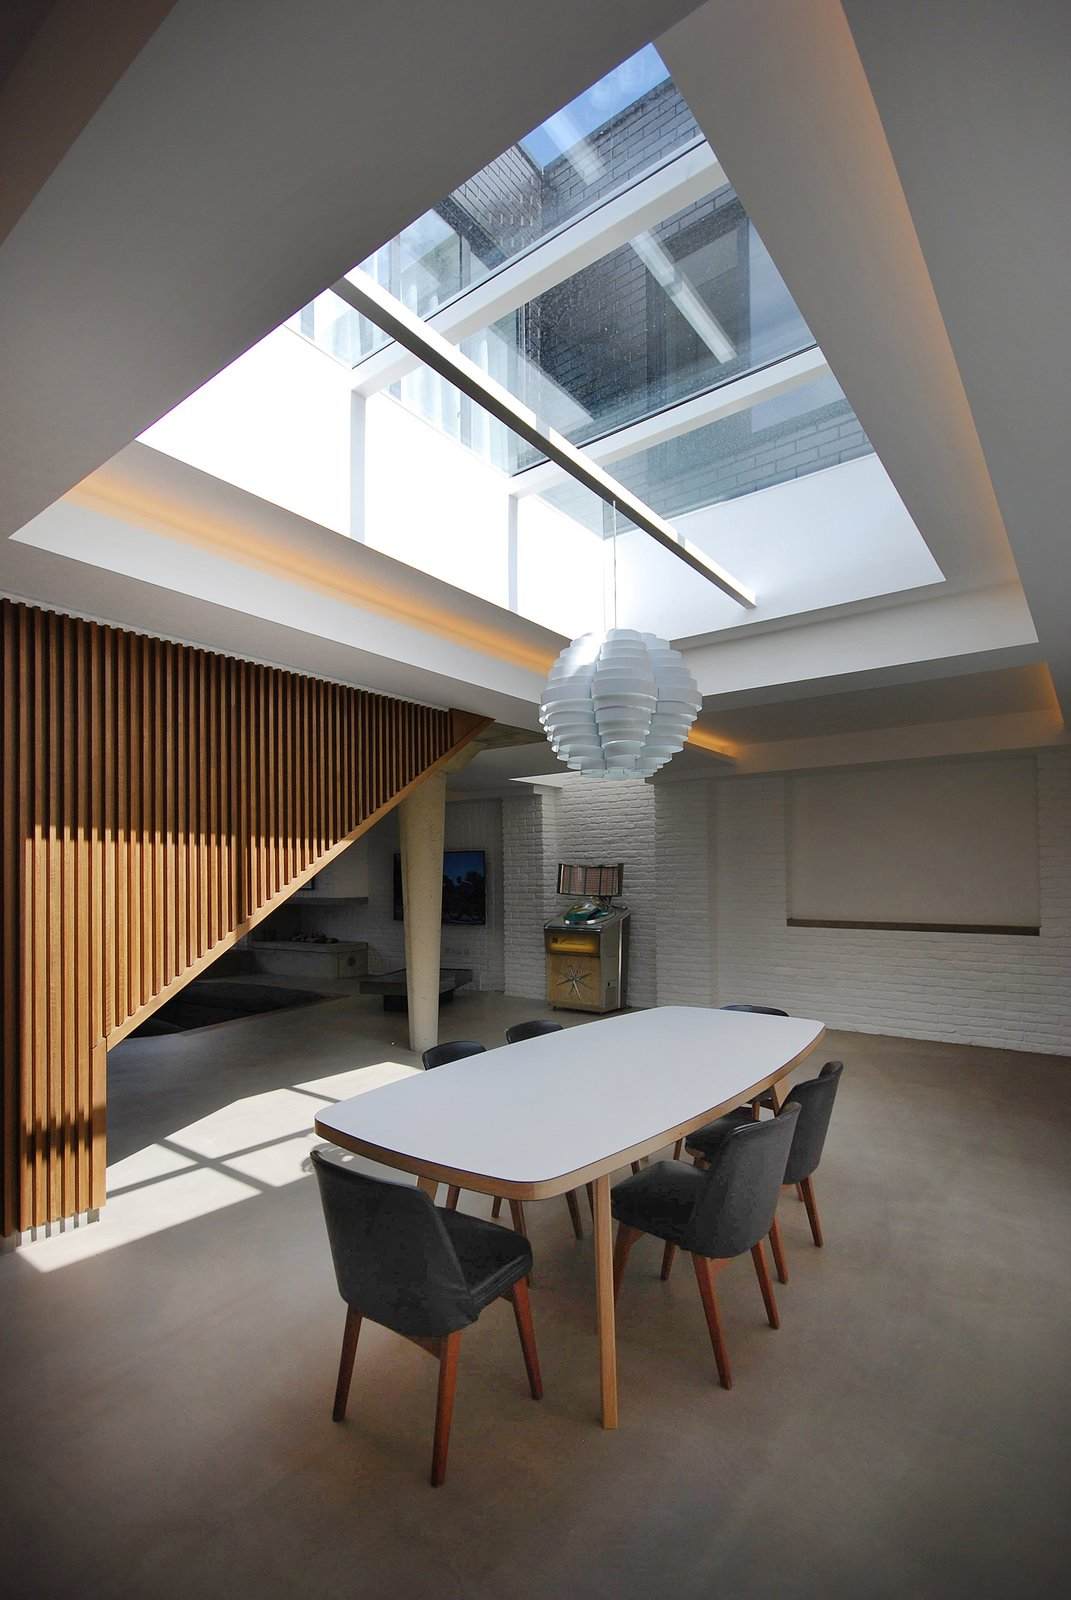 #interior #dining #modern #table #diningarea #naturallighting #skylight #london #jamesburleigh #brick #industrial #woodwall   Photo 12 of 20 in Pull Up a Chair in One of These 20 Modern Dining Rooms from Dining